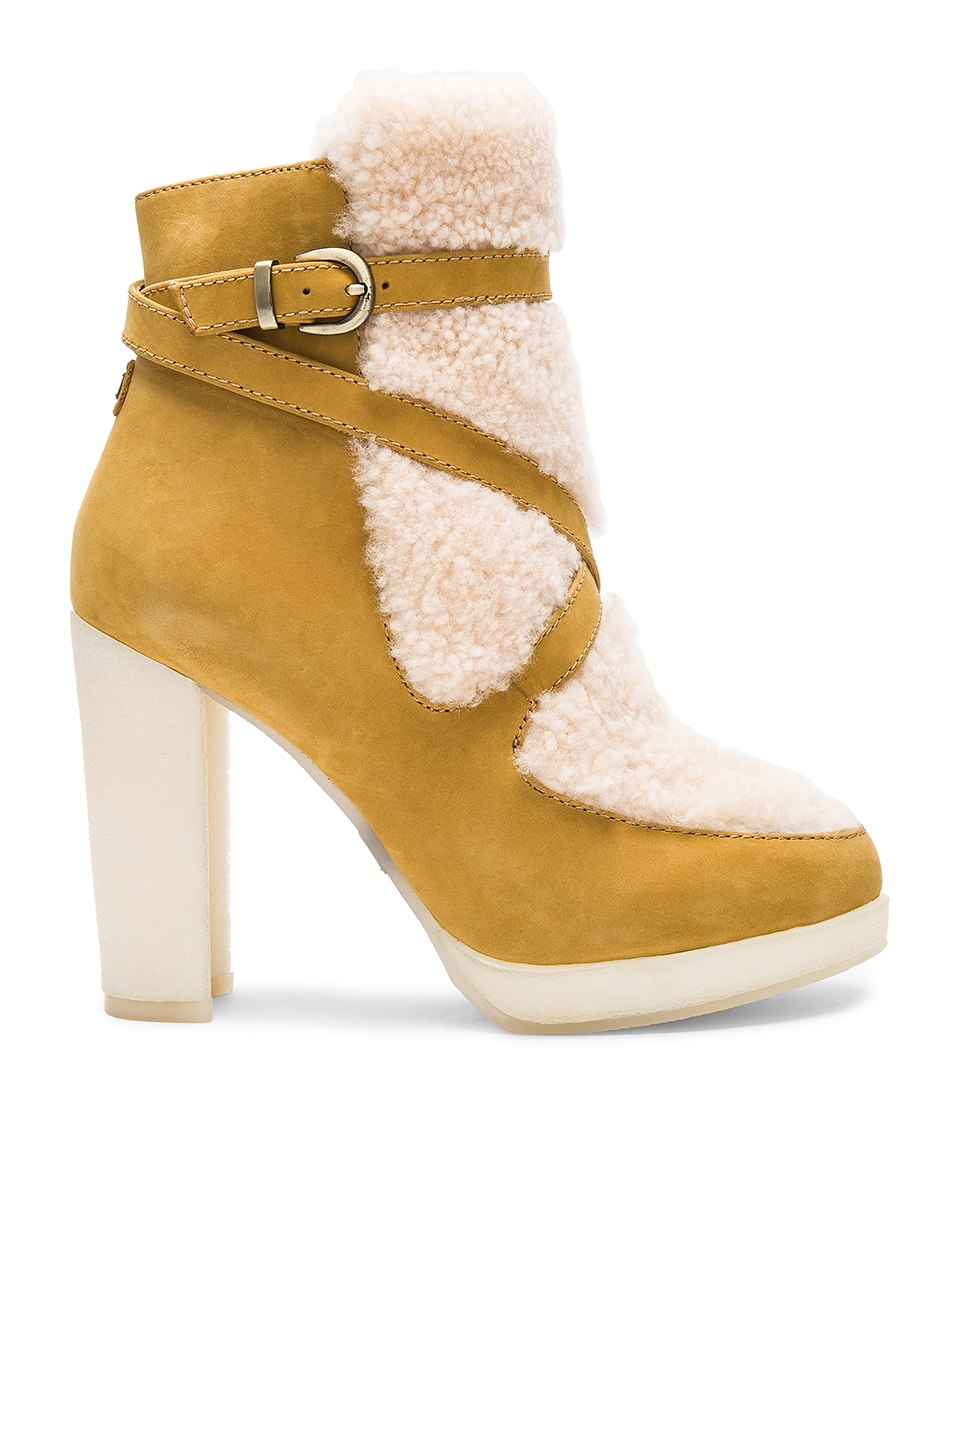 Mercy Shearling Heels by Australia Luxe Collective